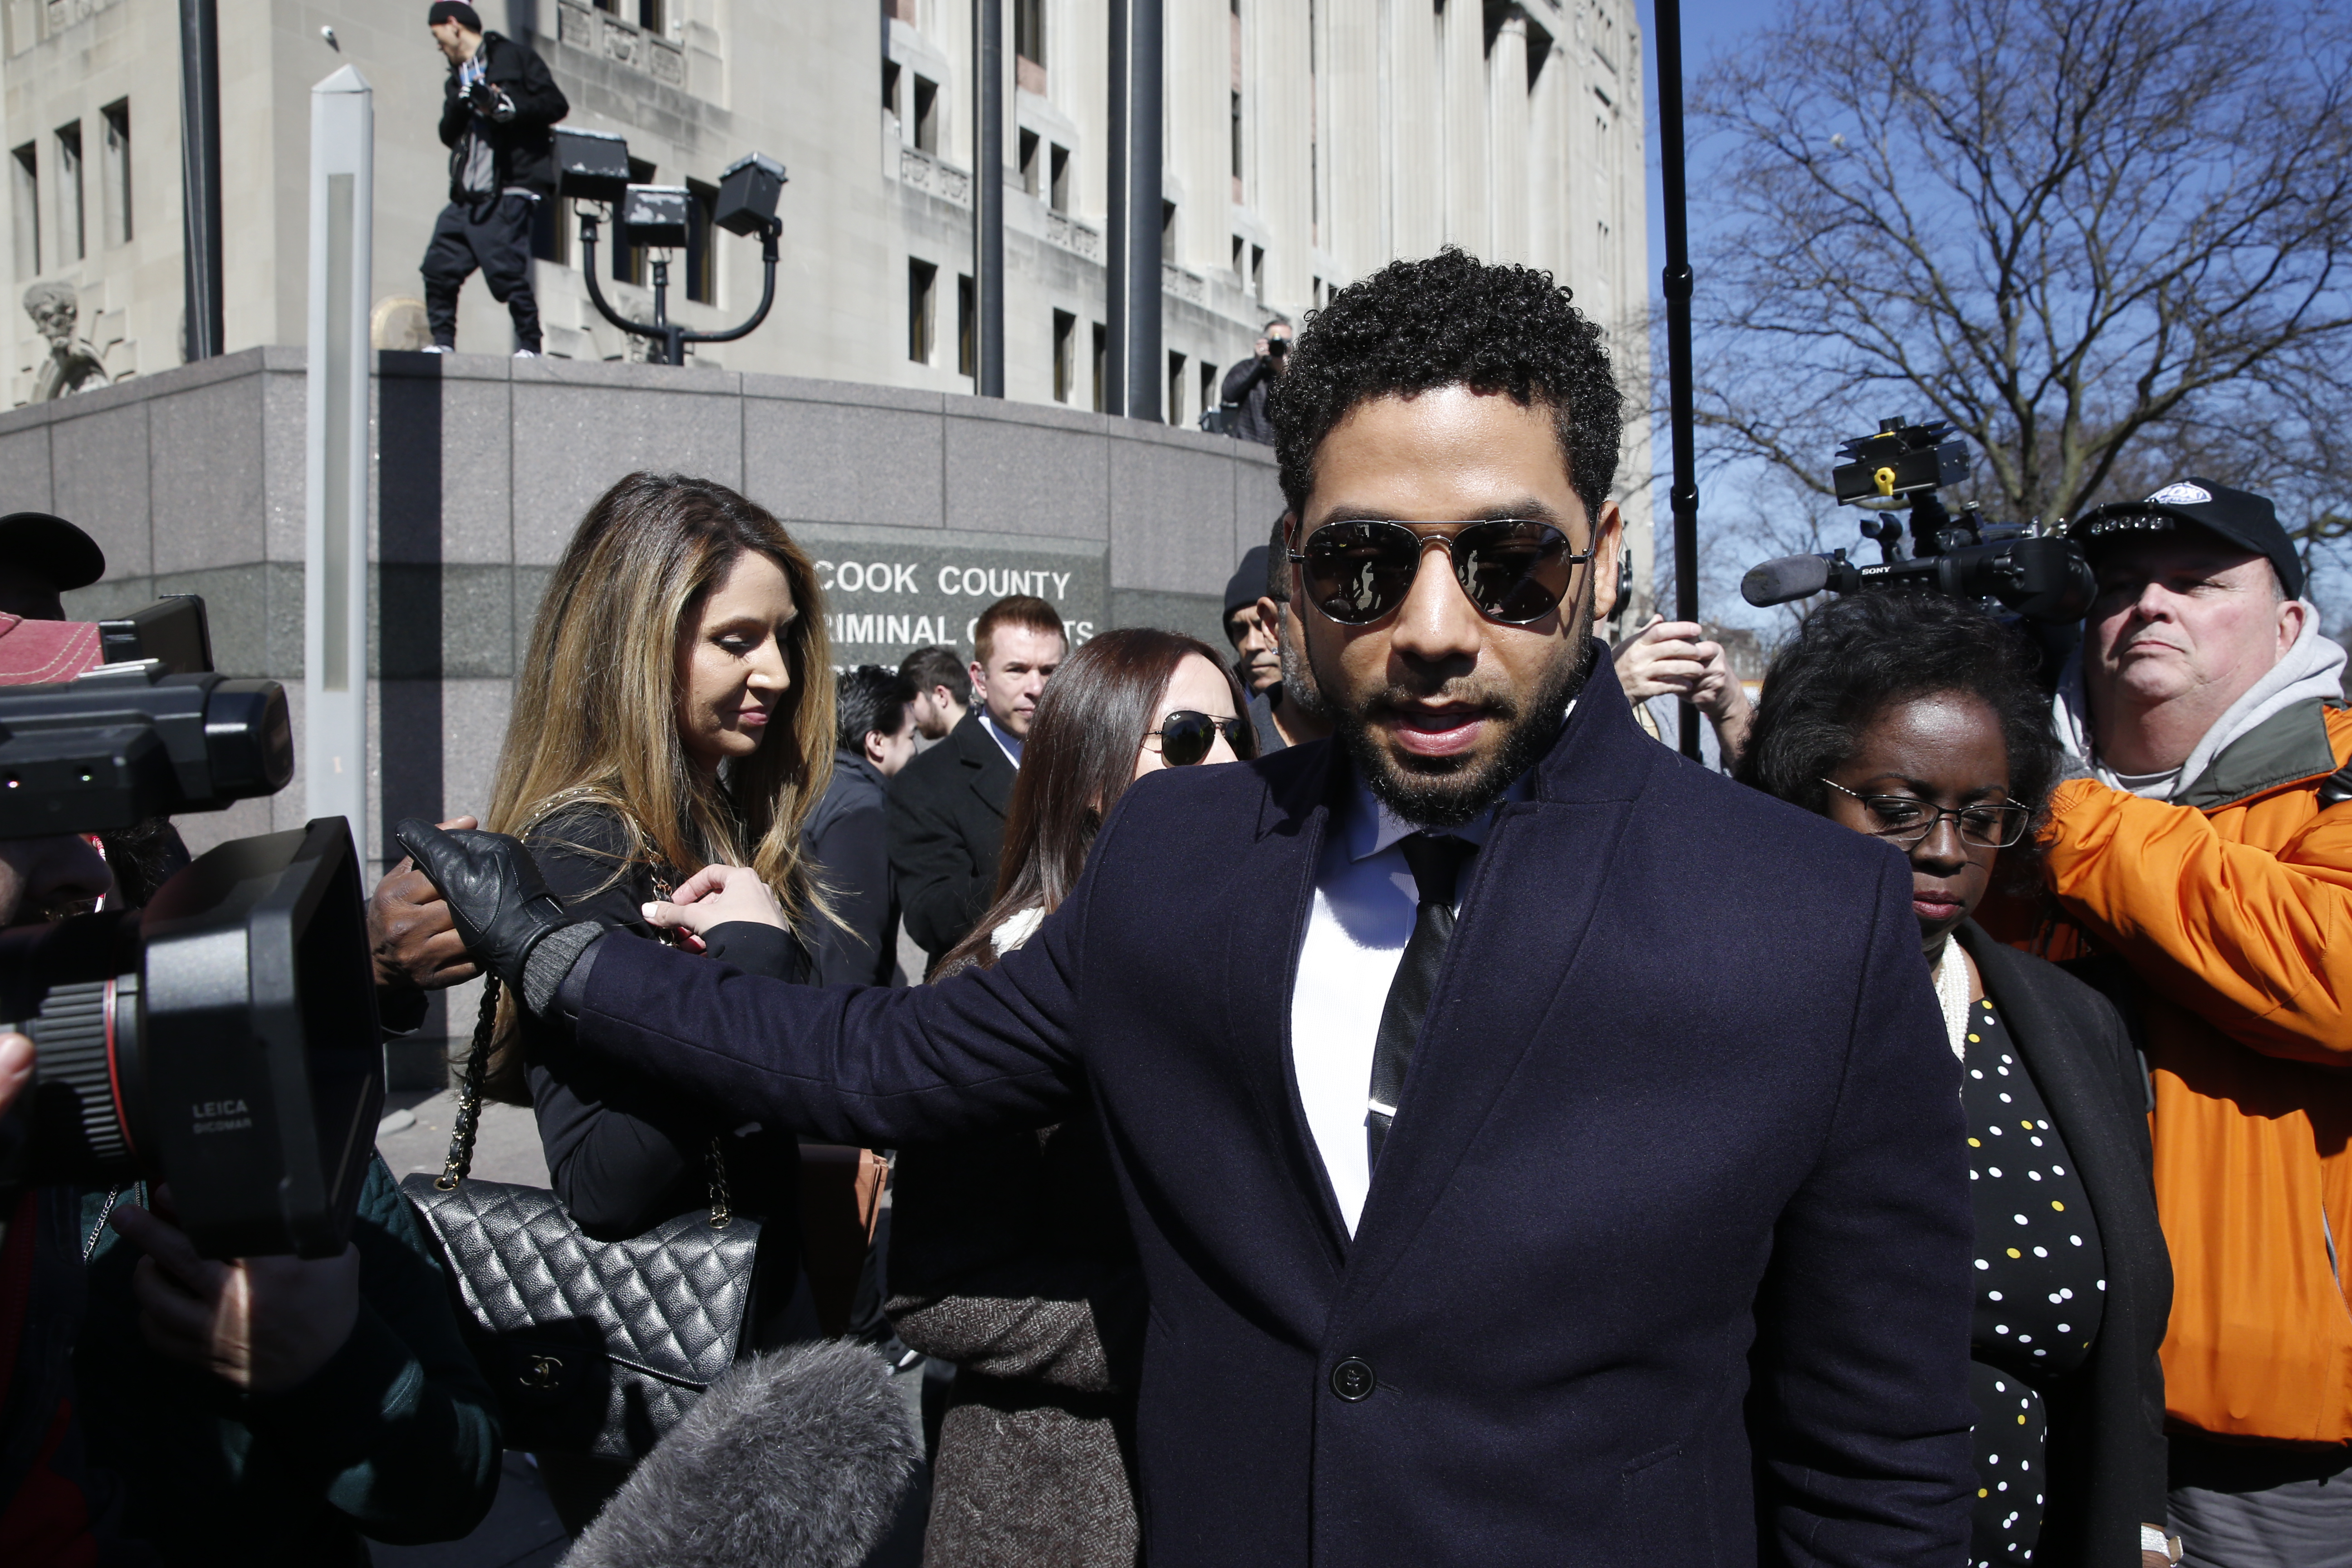 Jussie Smollett leaves with attorney Patricia Brown Holmes, right, following his court appearance at Leighton Courthouse on March 26, 2019 in Chicago, Illinois. This morning in court it was announced that all charges were dropped against the actor. (Photo by Nuccio DiNuzzo/Getty Images)